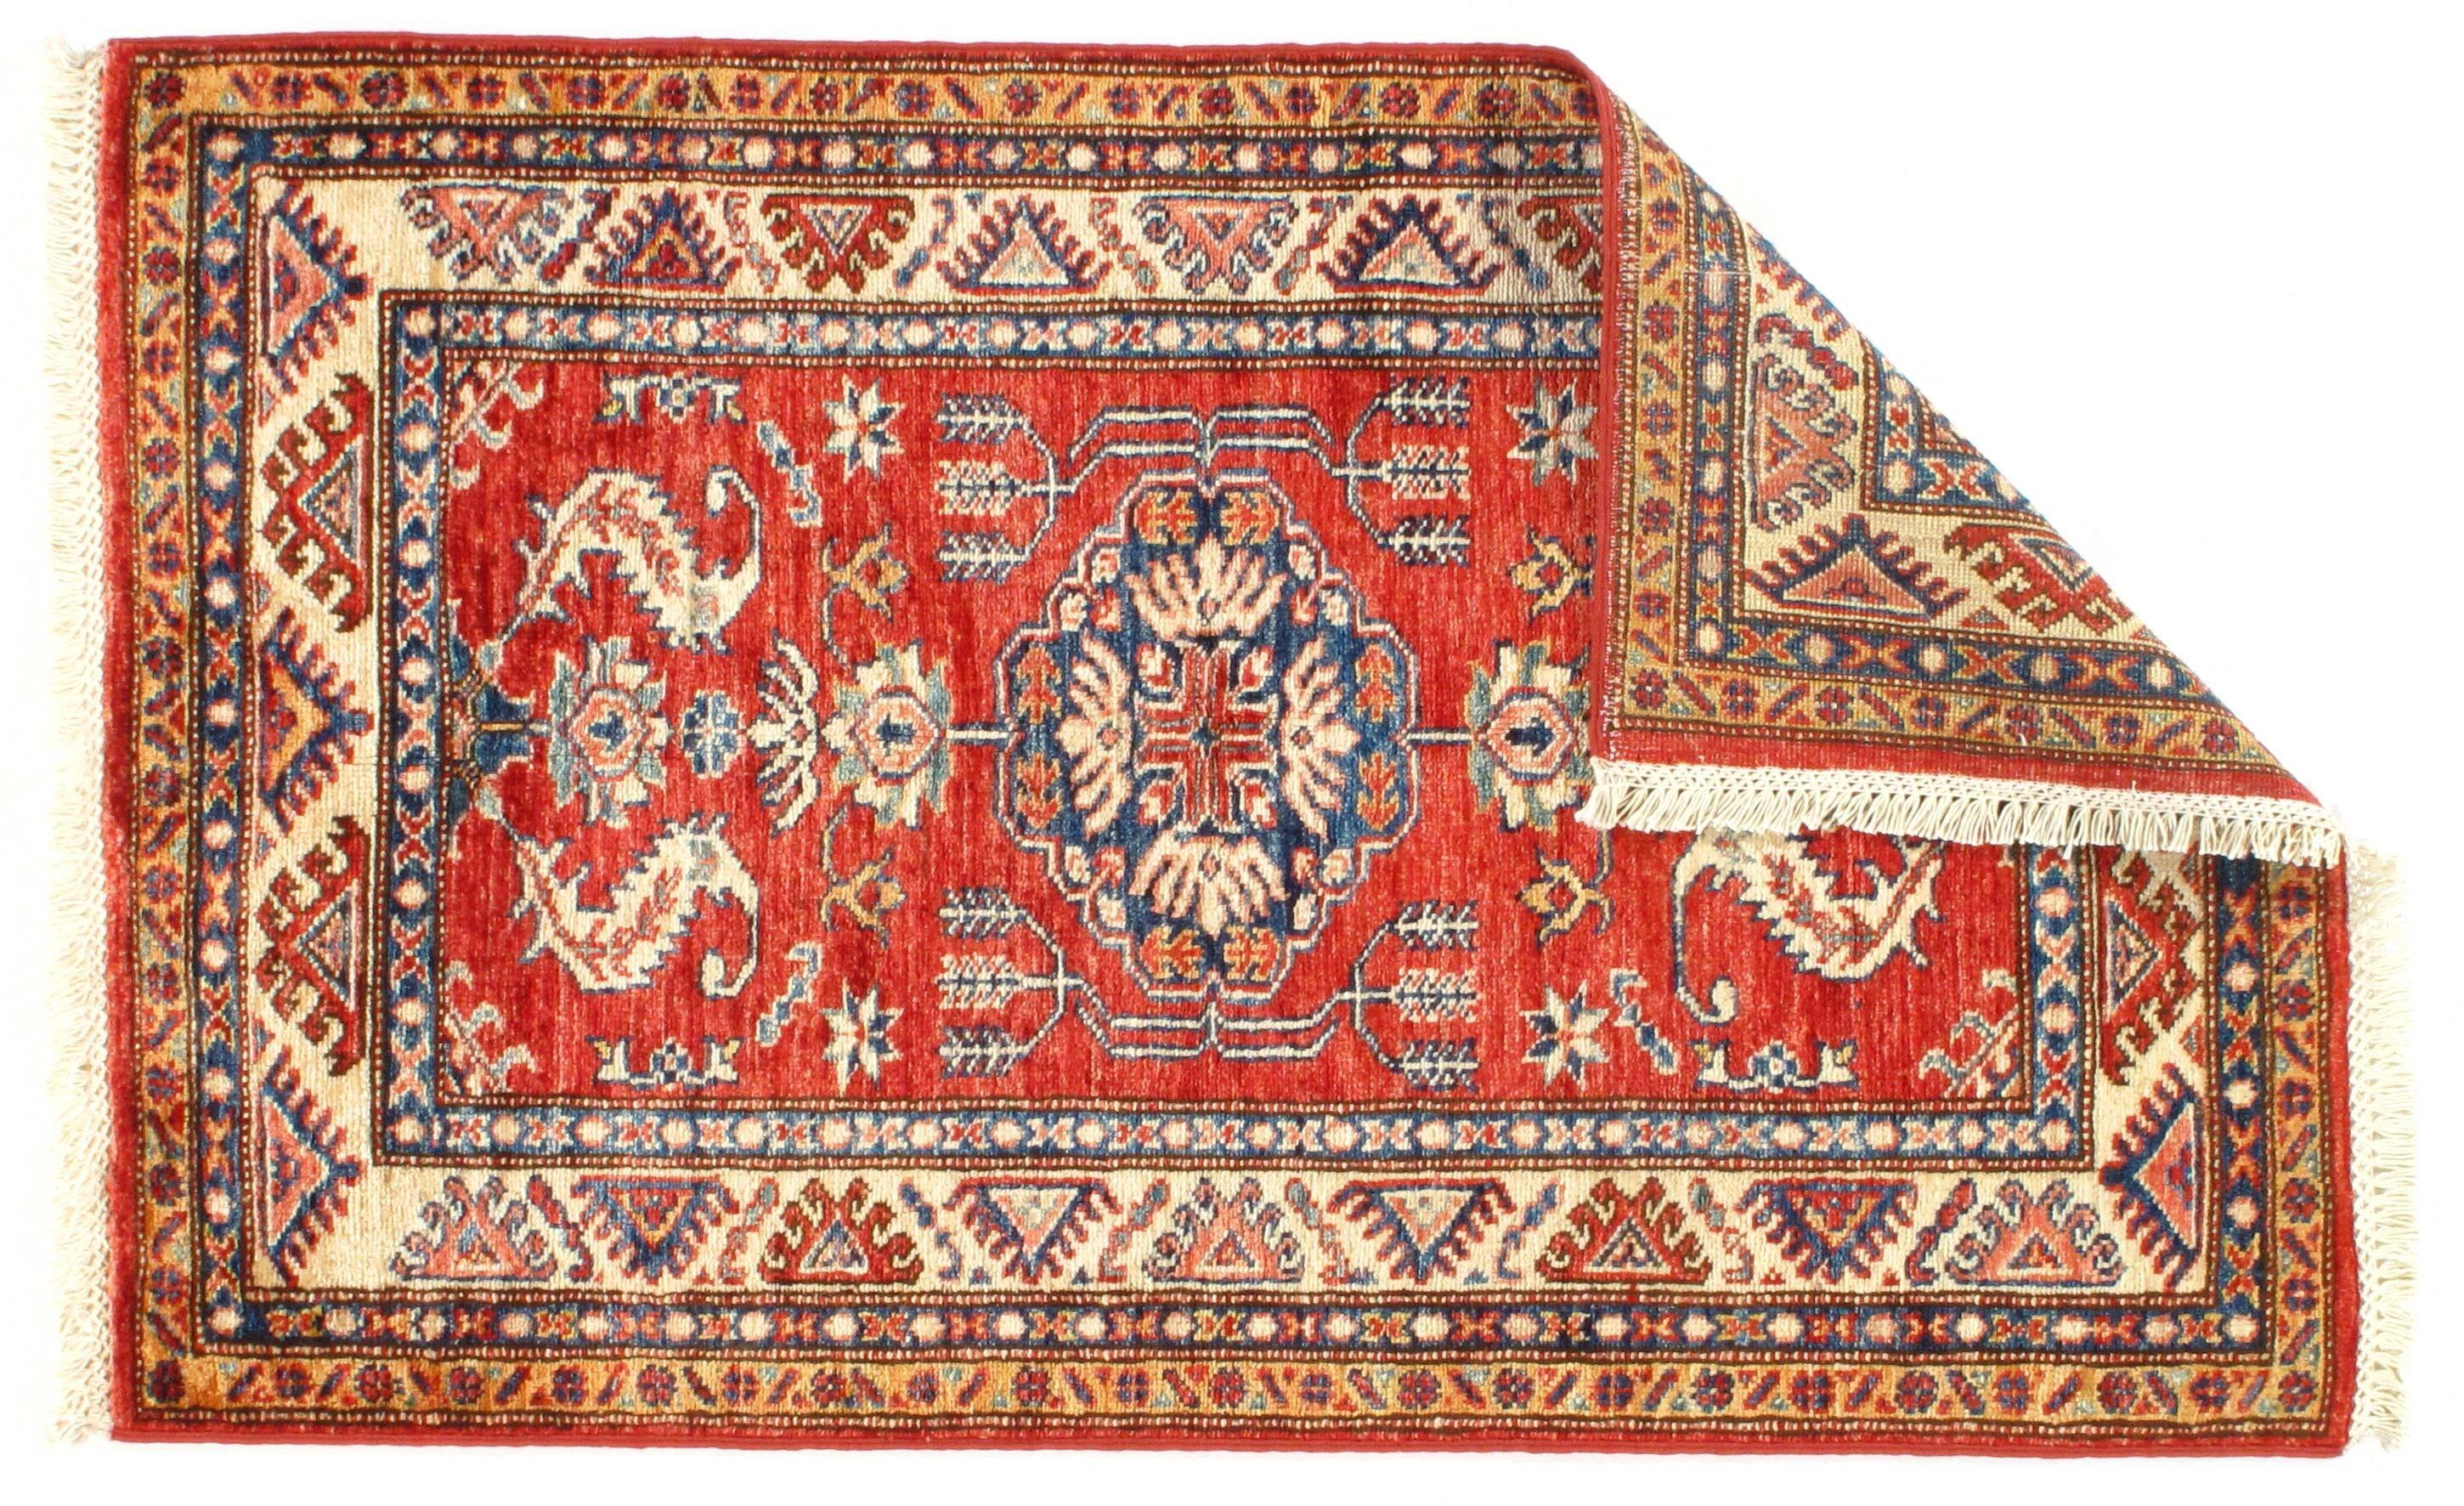 2 X 3 Pakistan Area Rugs You Ll Love In 2021 Wayfair